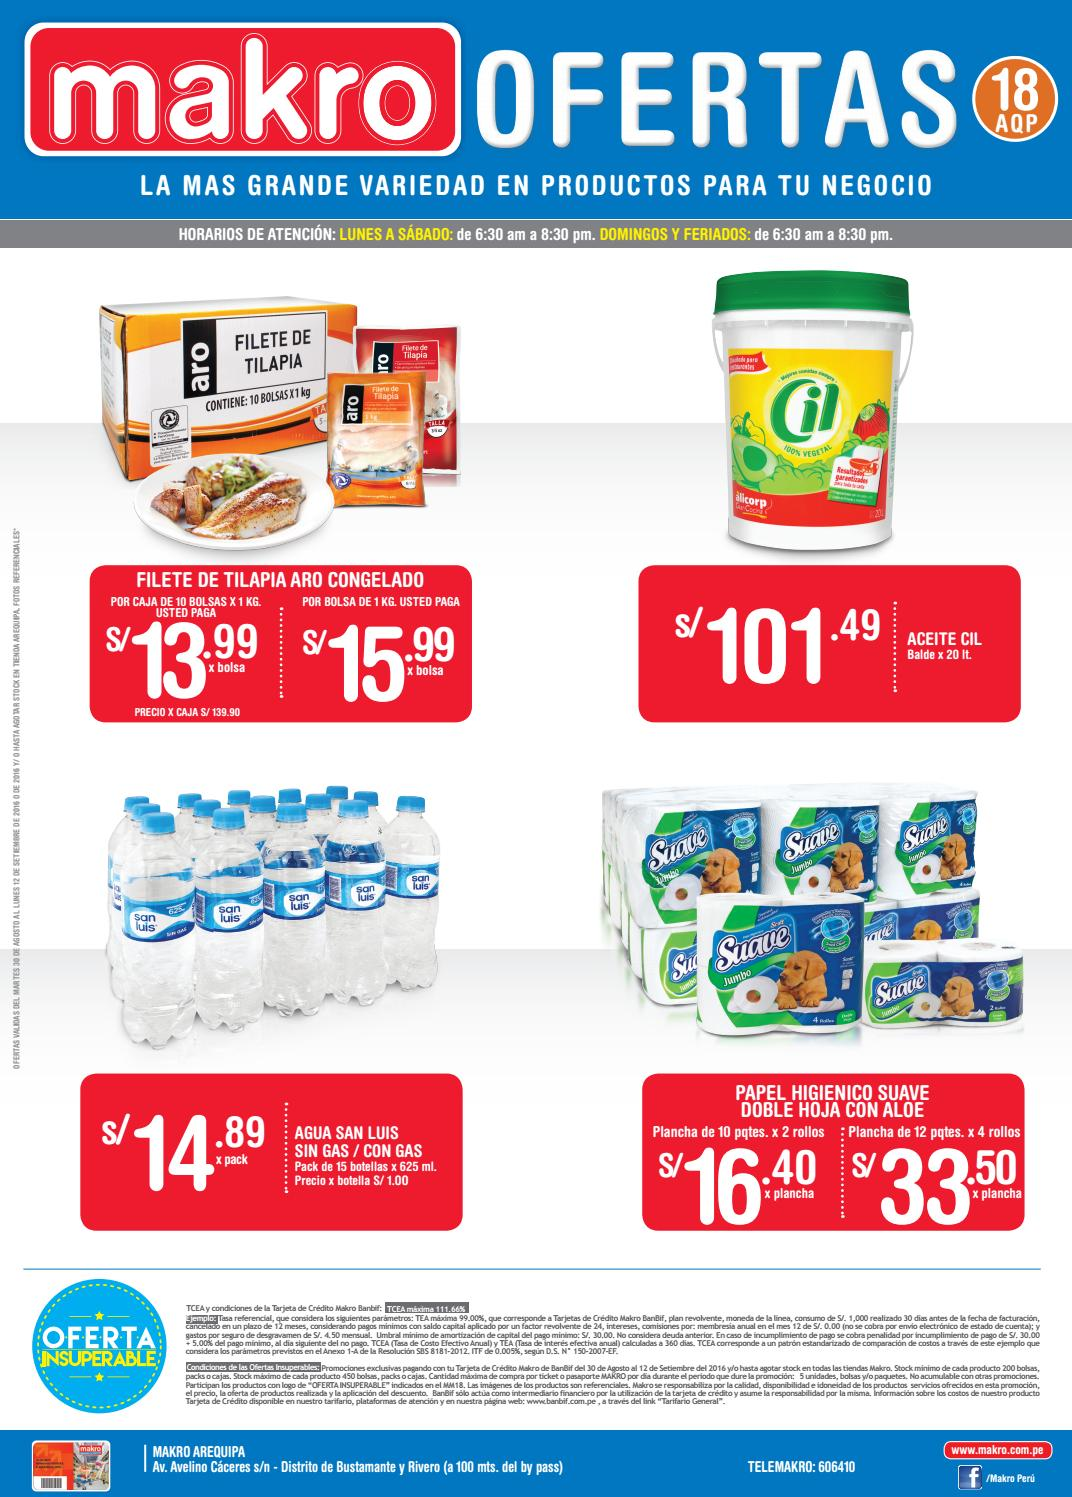 Encarte makro arequipa 18 by makro peru makro issuu for Horario peru wellness